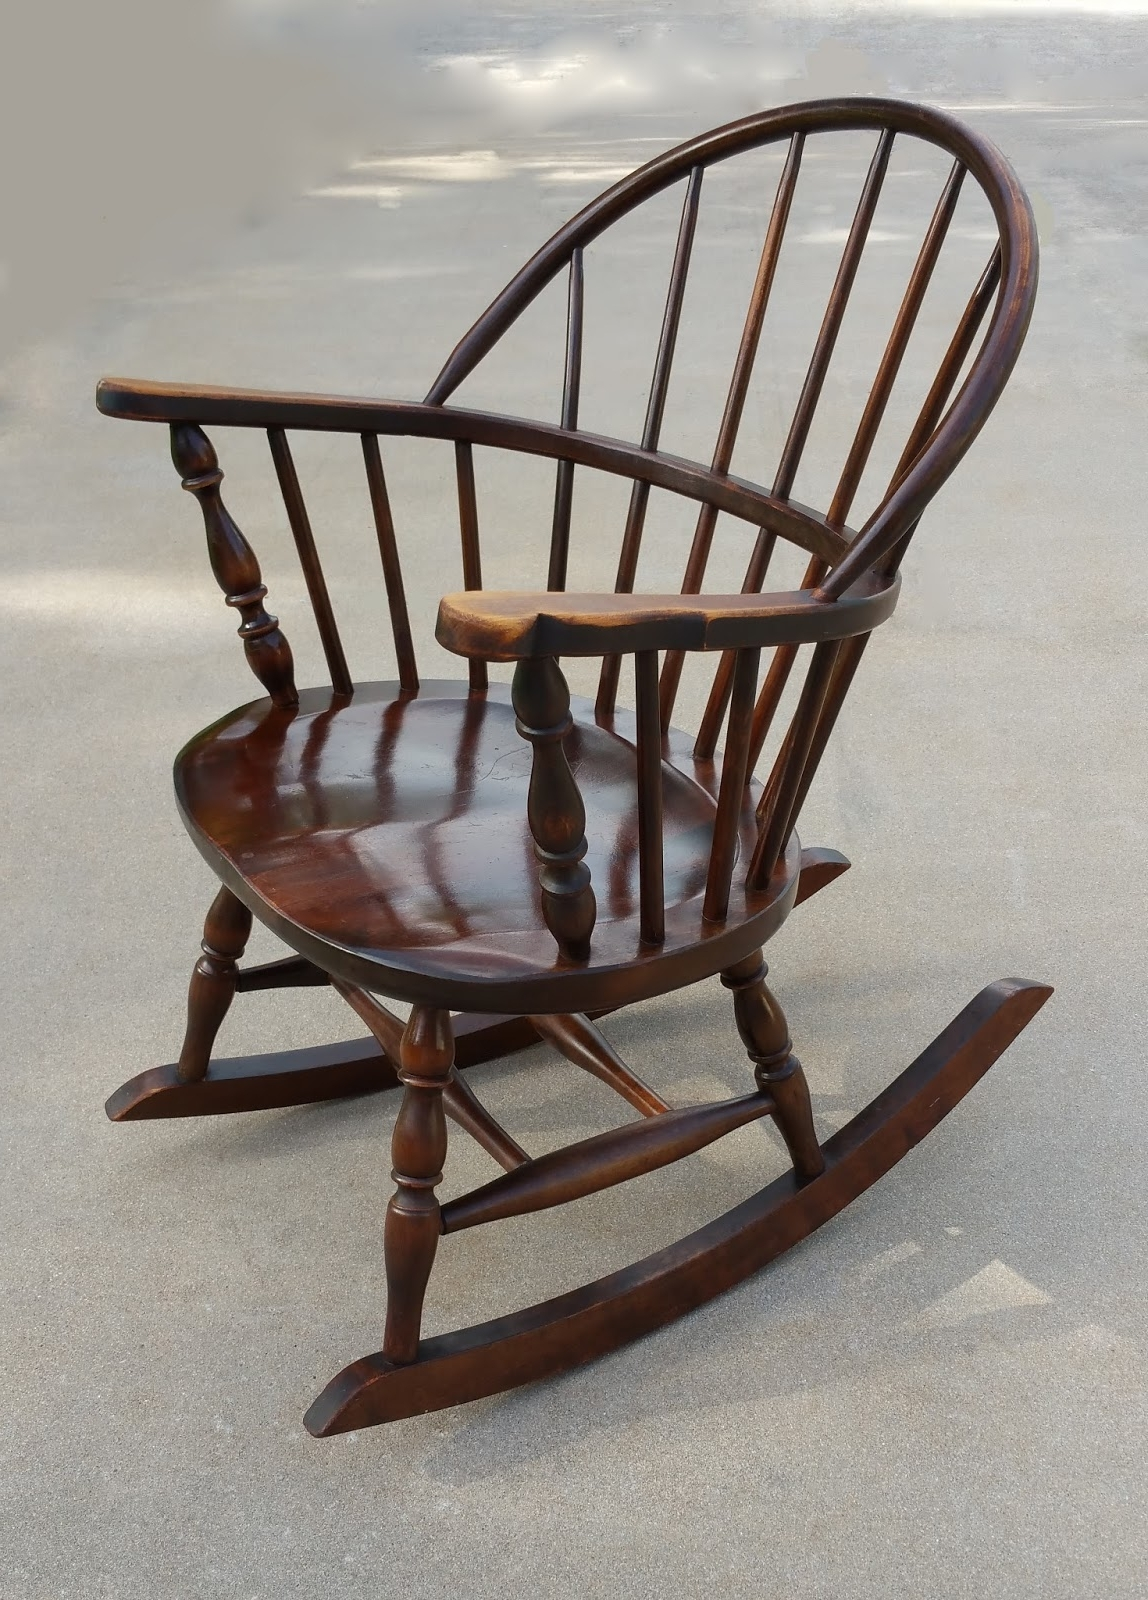 Antique Rocking Chairs Pertaining To Popular Mendlbarr: Rocking Chairs Every Home Should Have At Least One! (View 10 of 15)